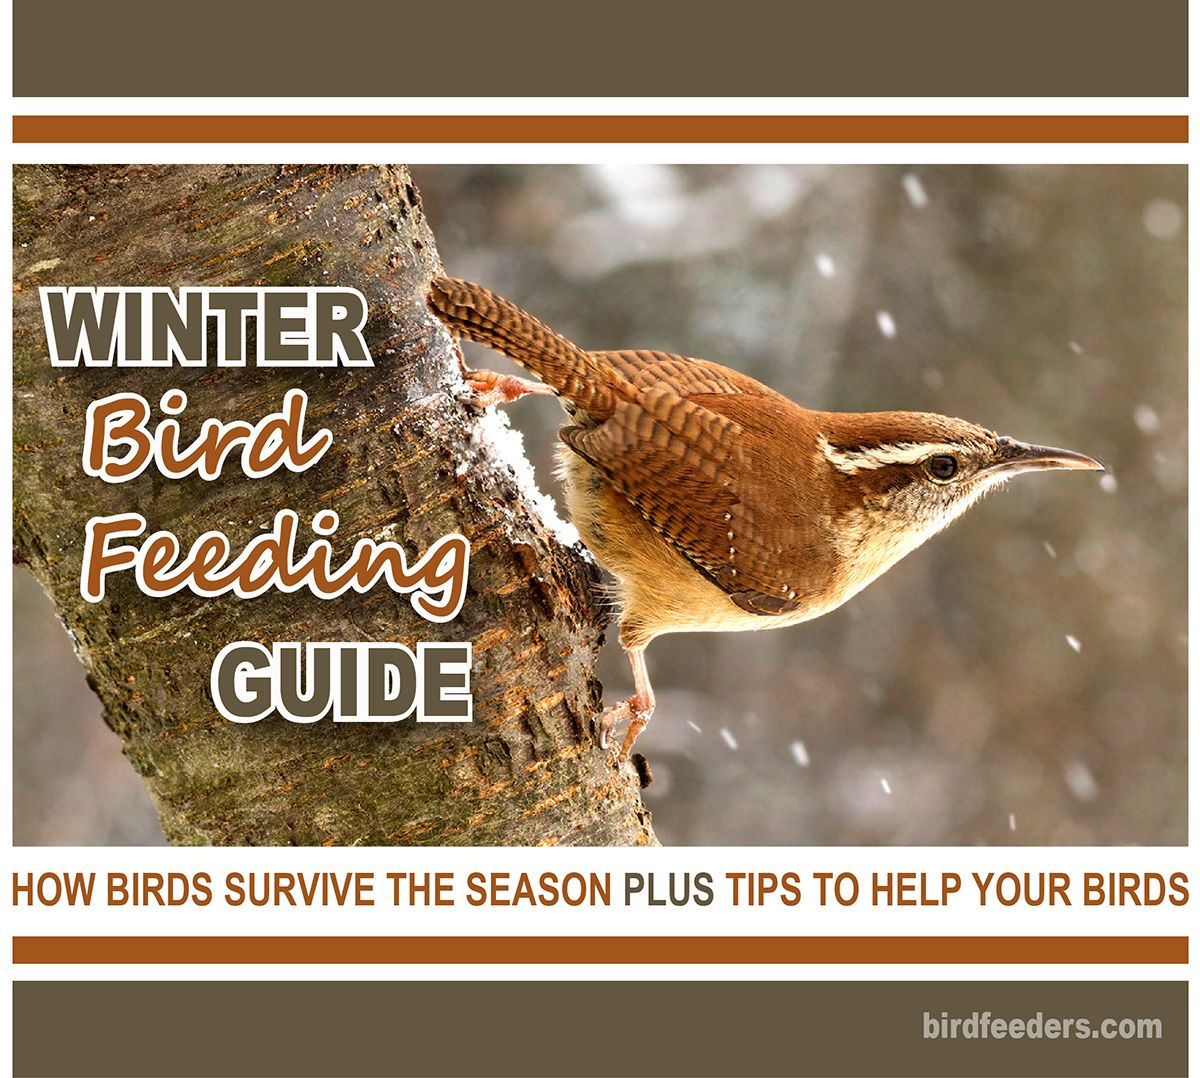 Winter bird feeding guide -- Learn all about feeding birds in your backyard through the coldest months of the year. Tips on bird feeding, water for birds and facts on how birds survive the cold.